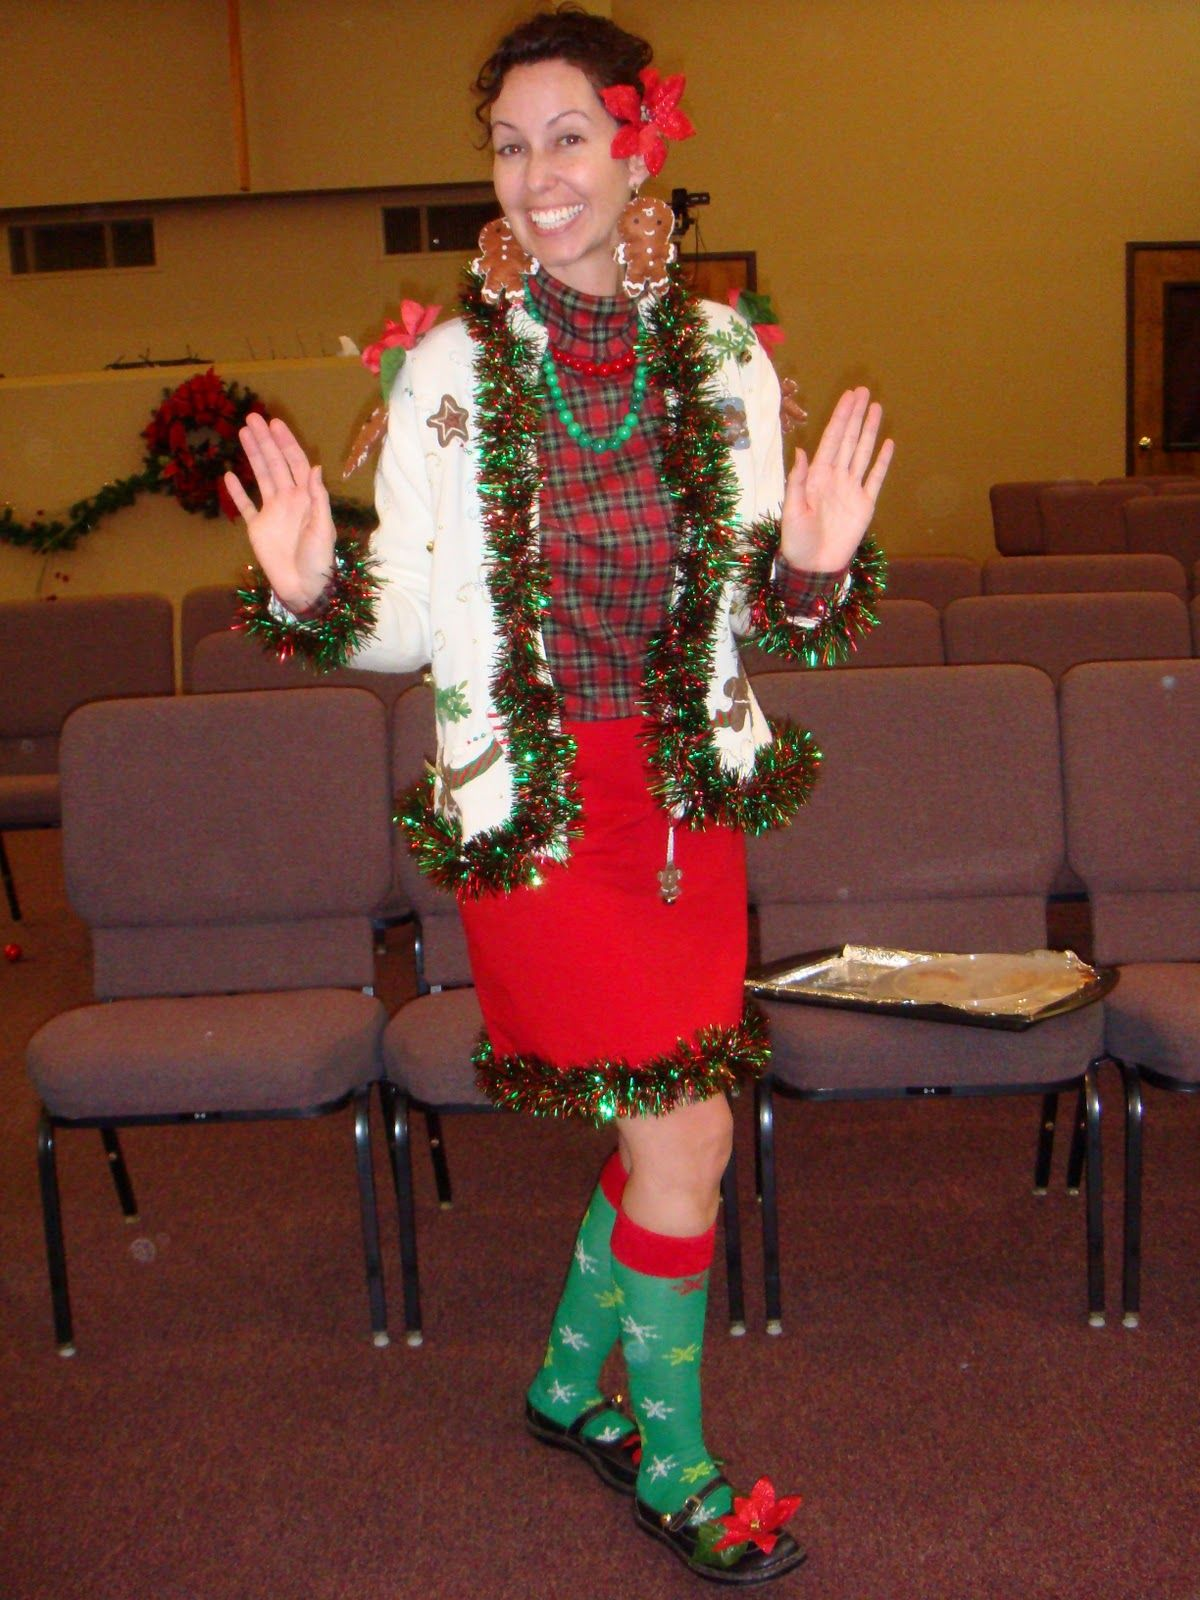 Funny Christmas Party Outfit Ideas Part - 15: Had A Blast Last Night With My Womenu0026 Group At Church Celebrating Christmas  Early. I Wanted To Share My MAD Skills For A Tacky Sweater ~ .